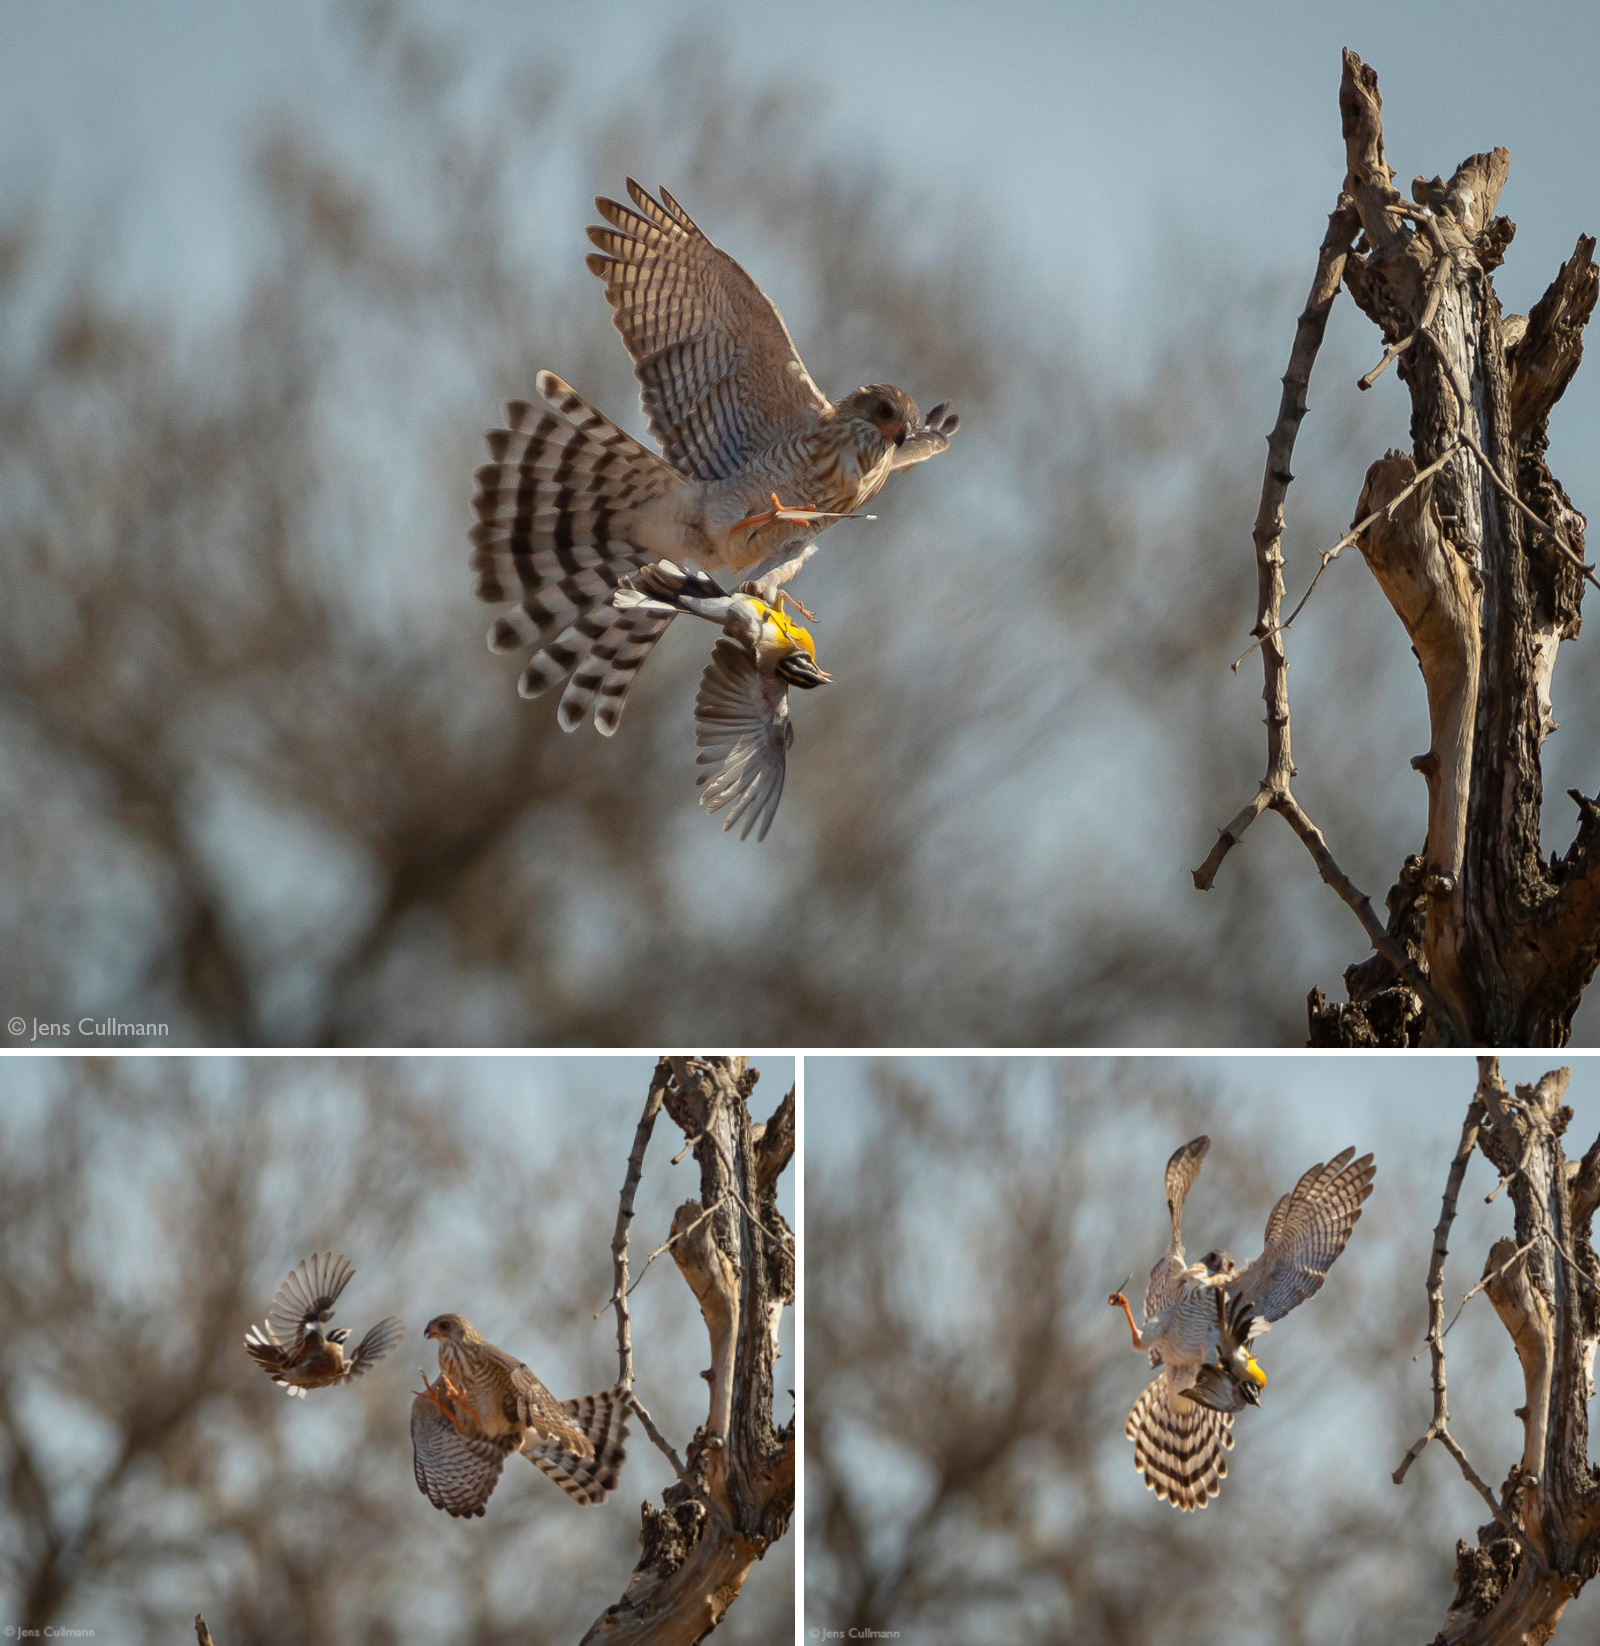 Gabar goshawk catching bird in Klaserie Private Nature Reserve, South Africa